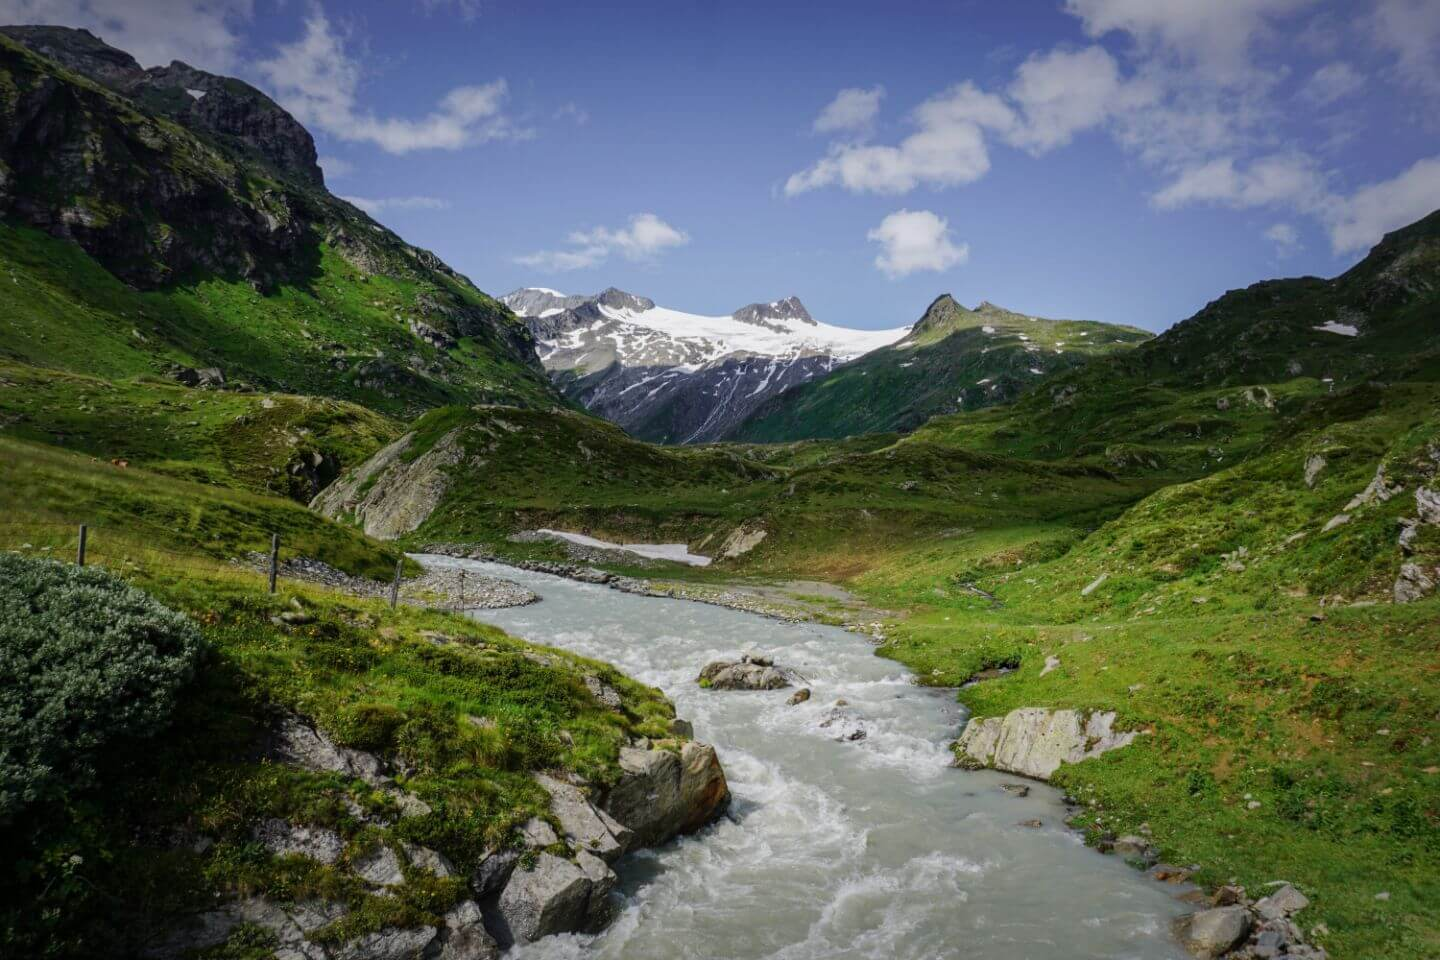 Dorferbach River, Venediger Group, Hohe Tauern Mountains, Venediger High Alpine Trail, Austria